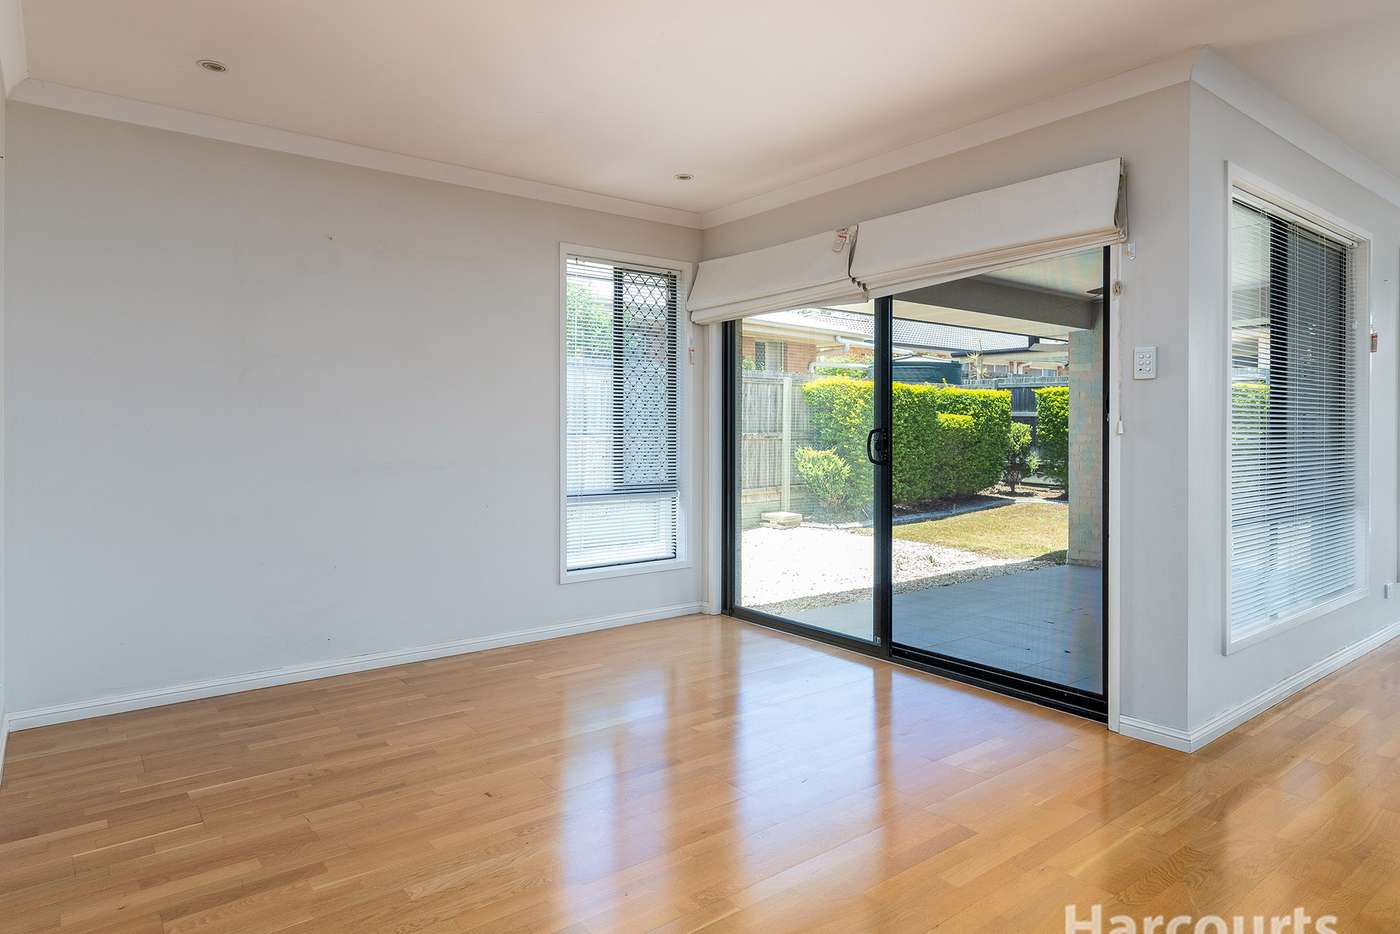 Fifth view of Homely house listing, 78 Woodlark Crescent, Parkinson QLD 4115